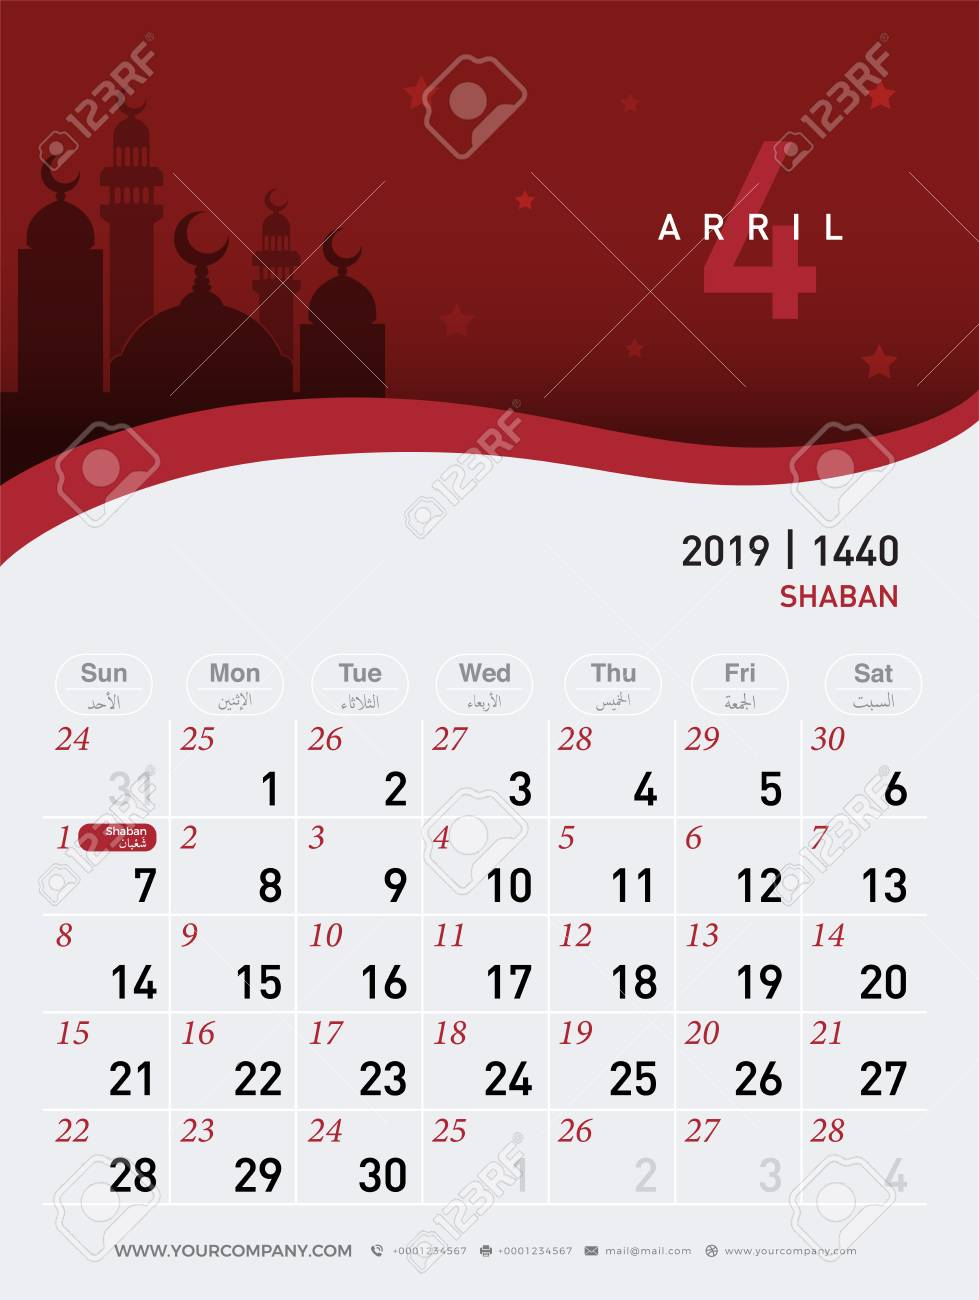 04 April Calendar 2019. Hijri 1440 To 1441 Islamic Design Template within 1440 Hijri Calendar